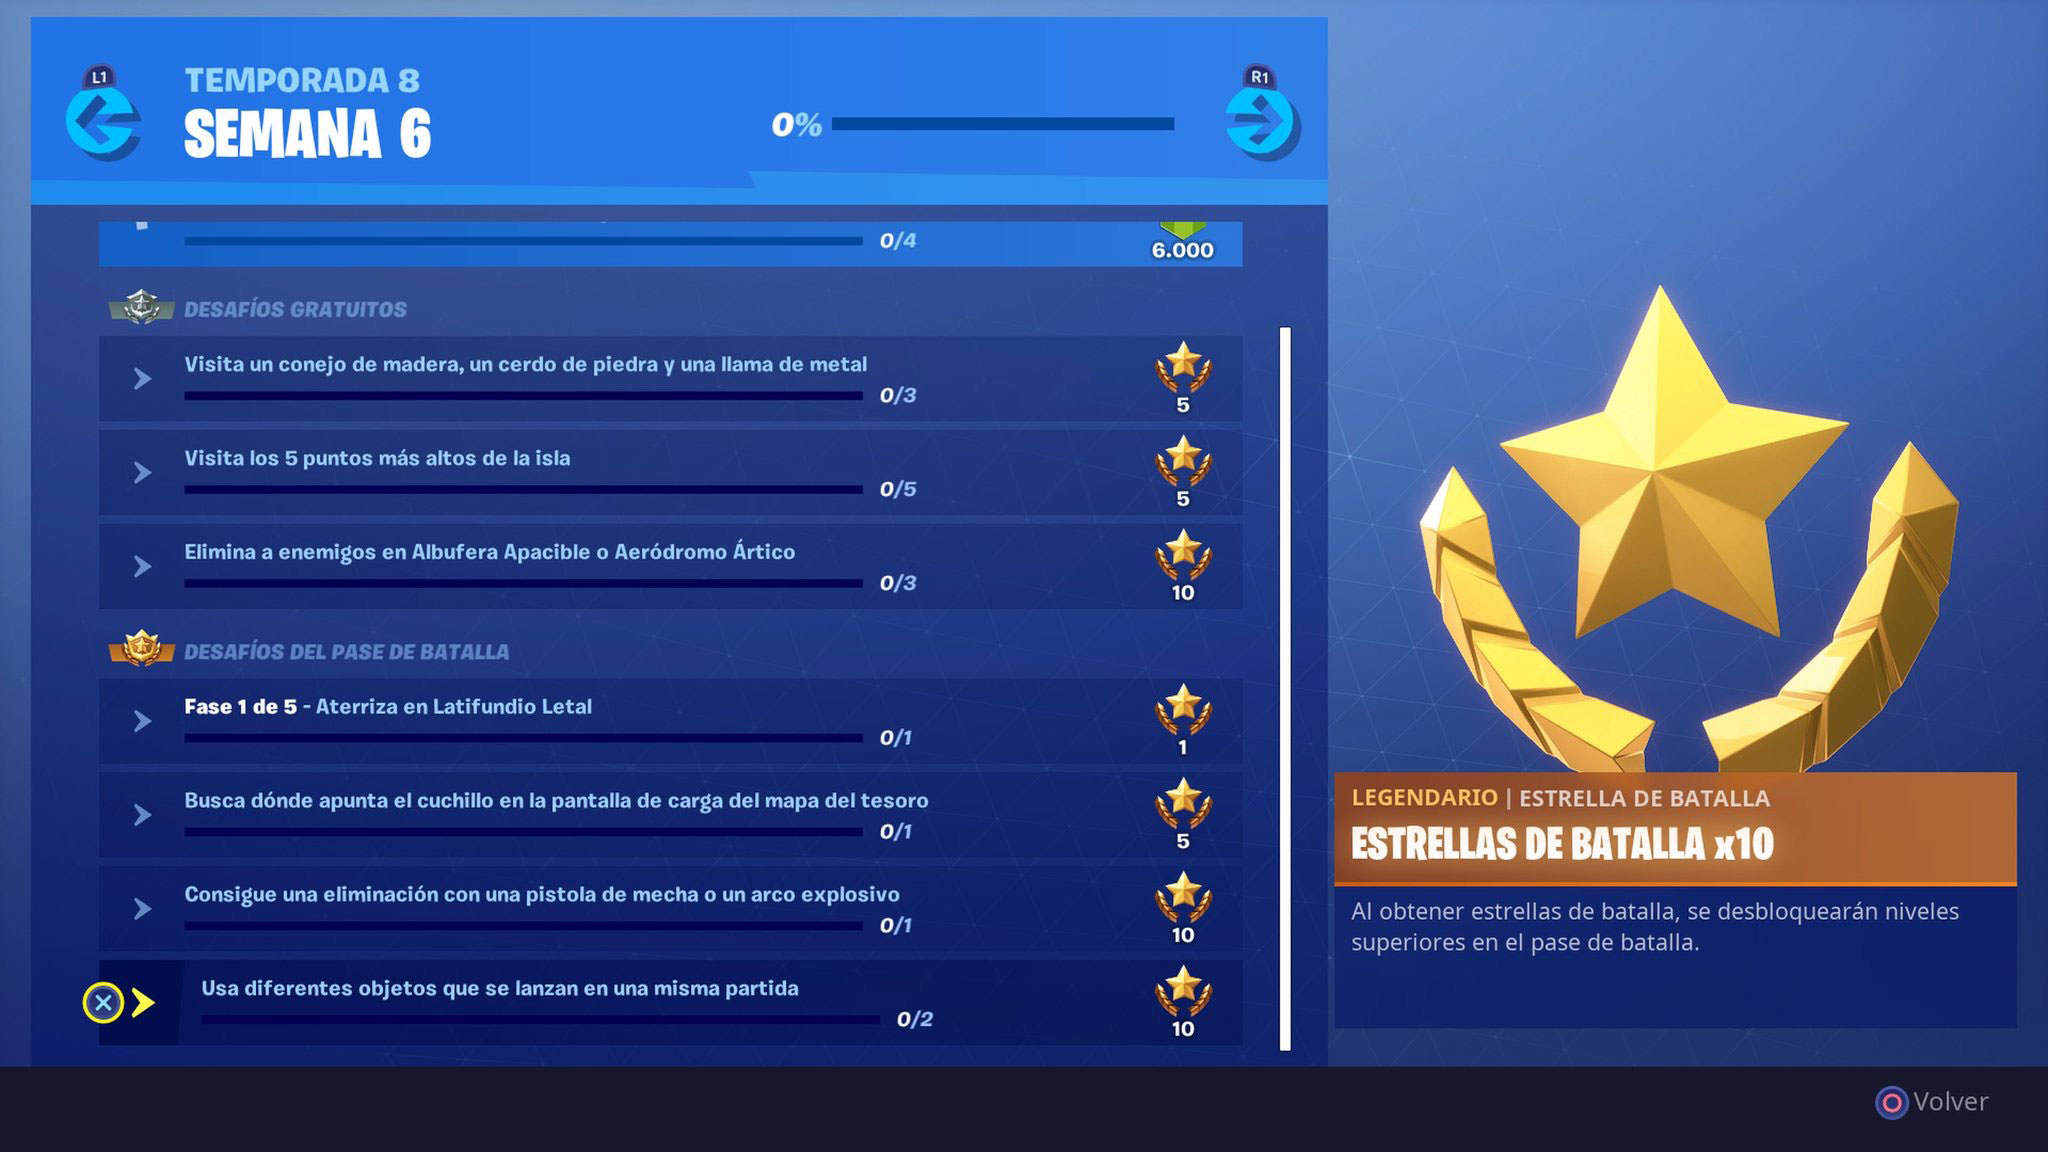 Desafíos semana 6 temporada 8 Fortnite